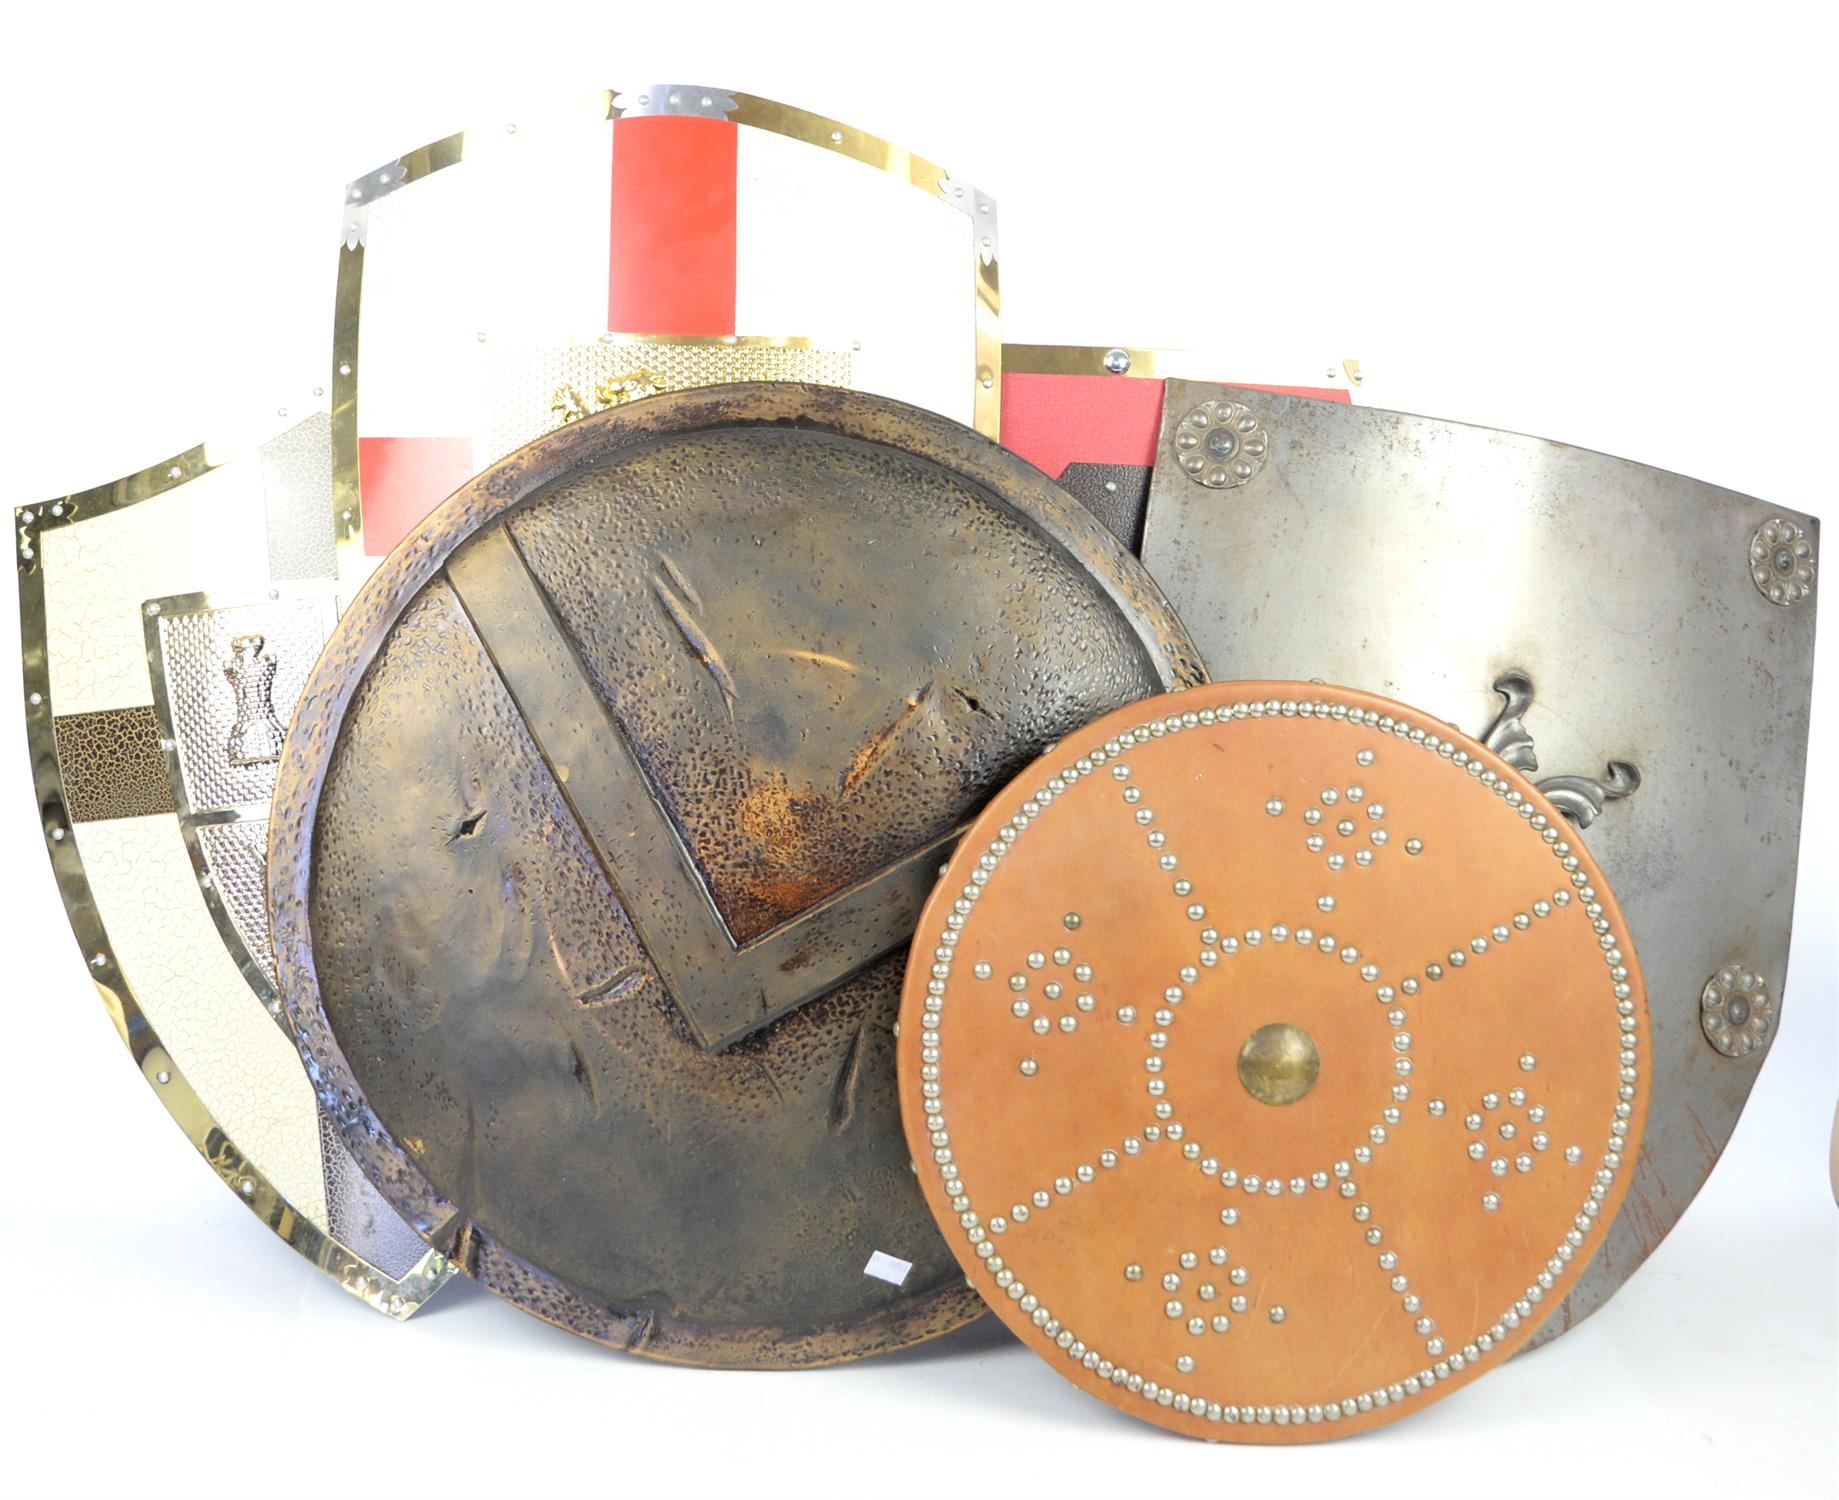 AMENDED DESCRIPTION Seven reproduction shields, various designs, one Indonesian Kris, two spears,